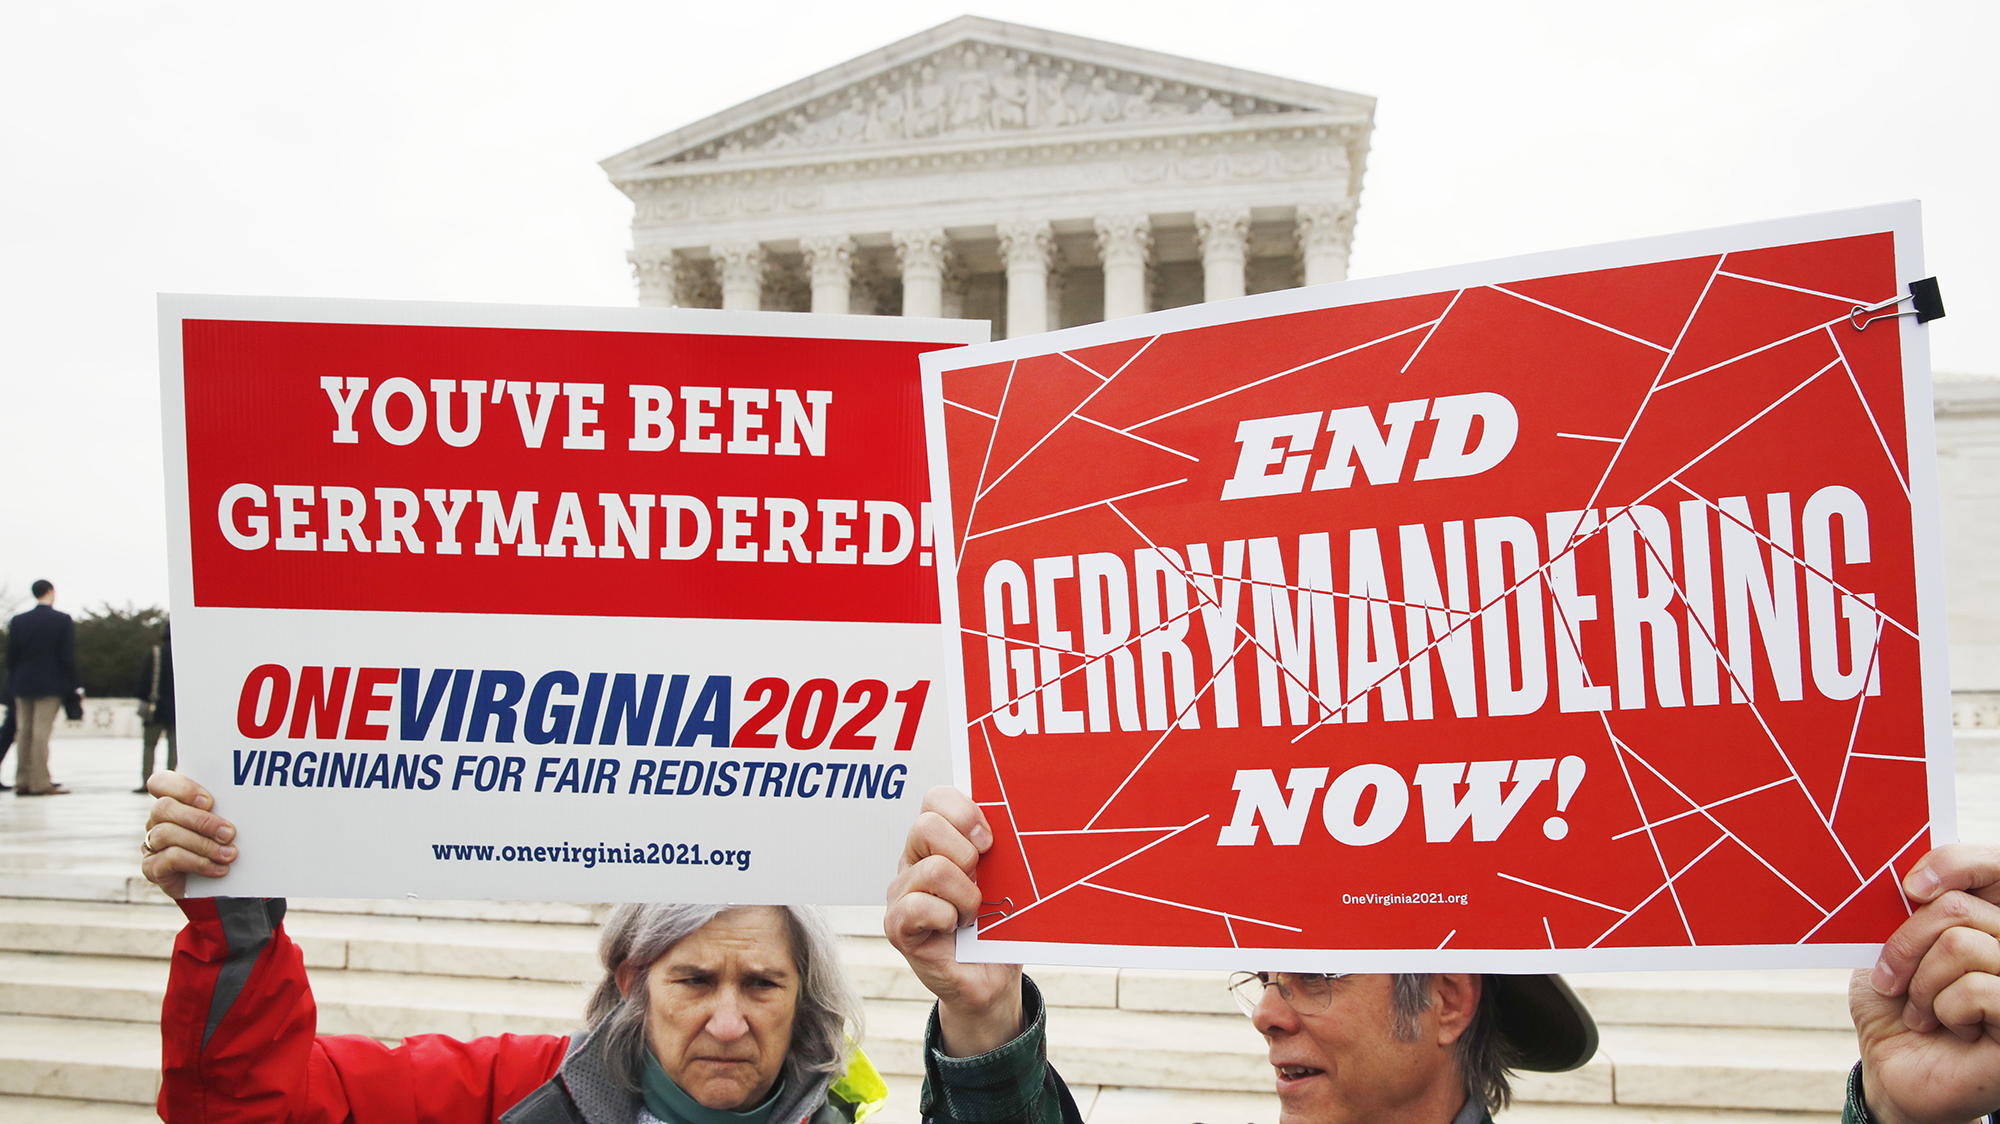 Efforts to limit partisan gerrymandering falter at Supreme Court